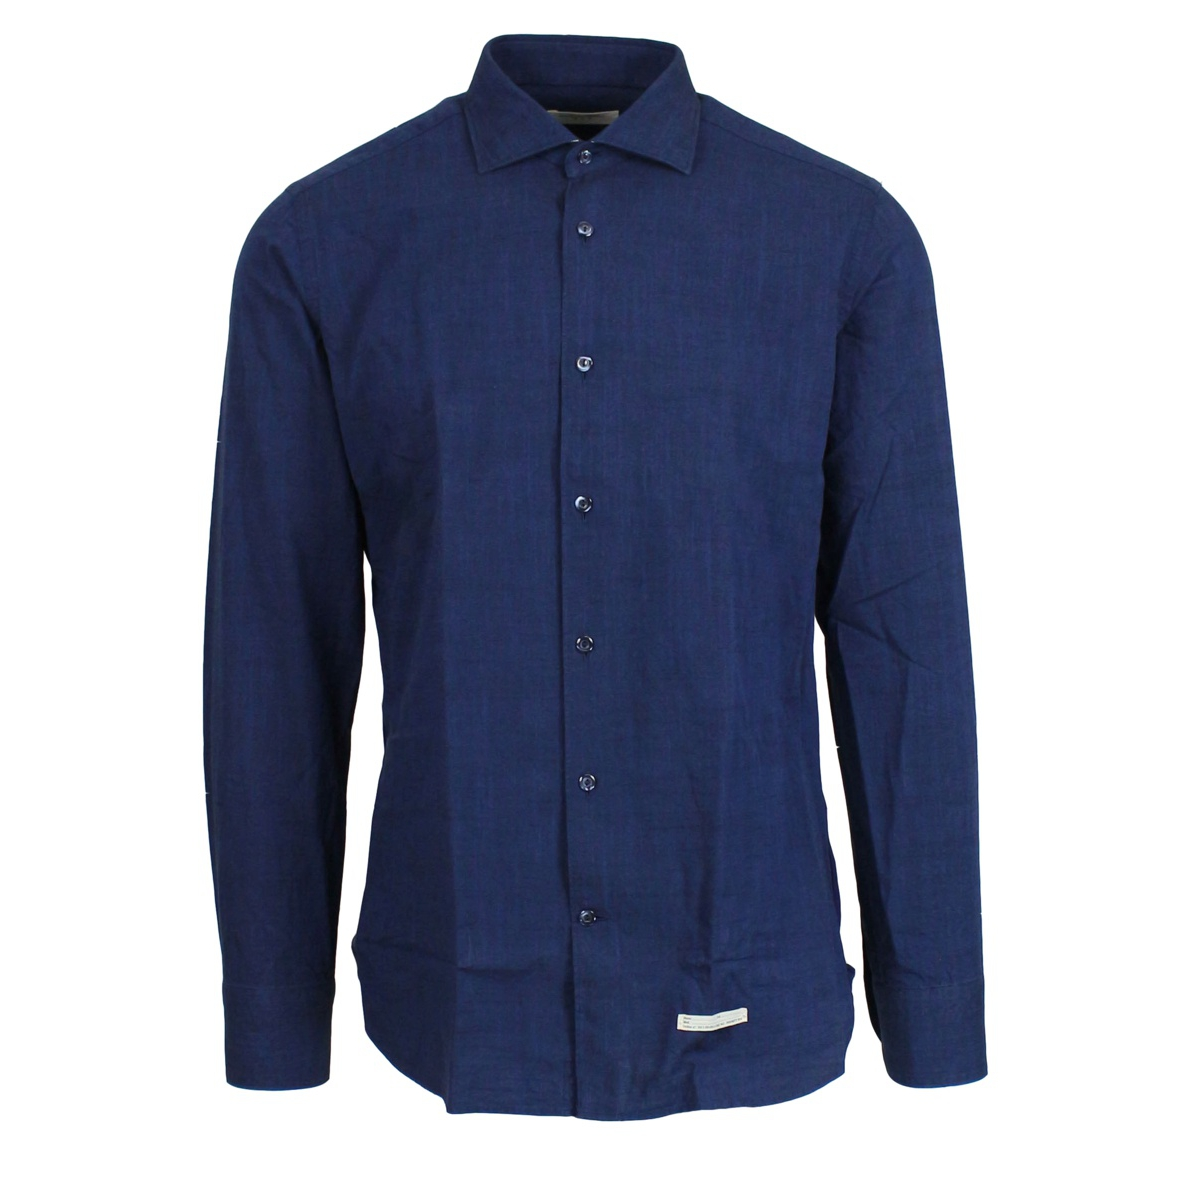 Solid color shirt with French collar Navy TINTORIA MATTEI